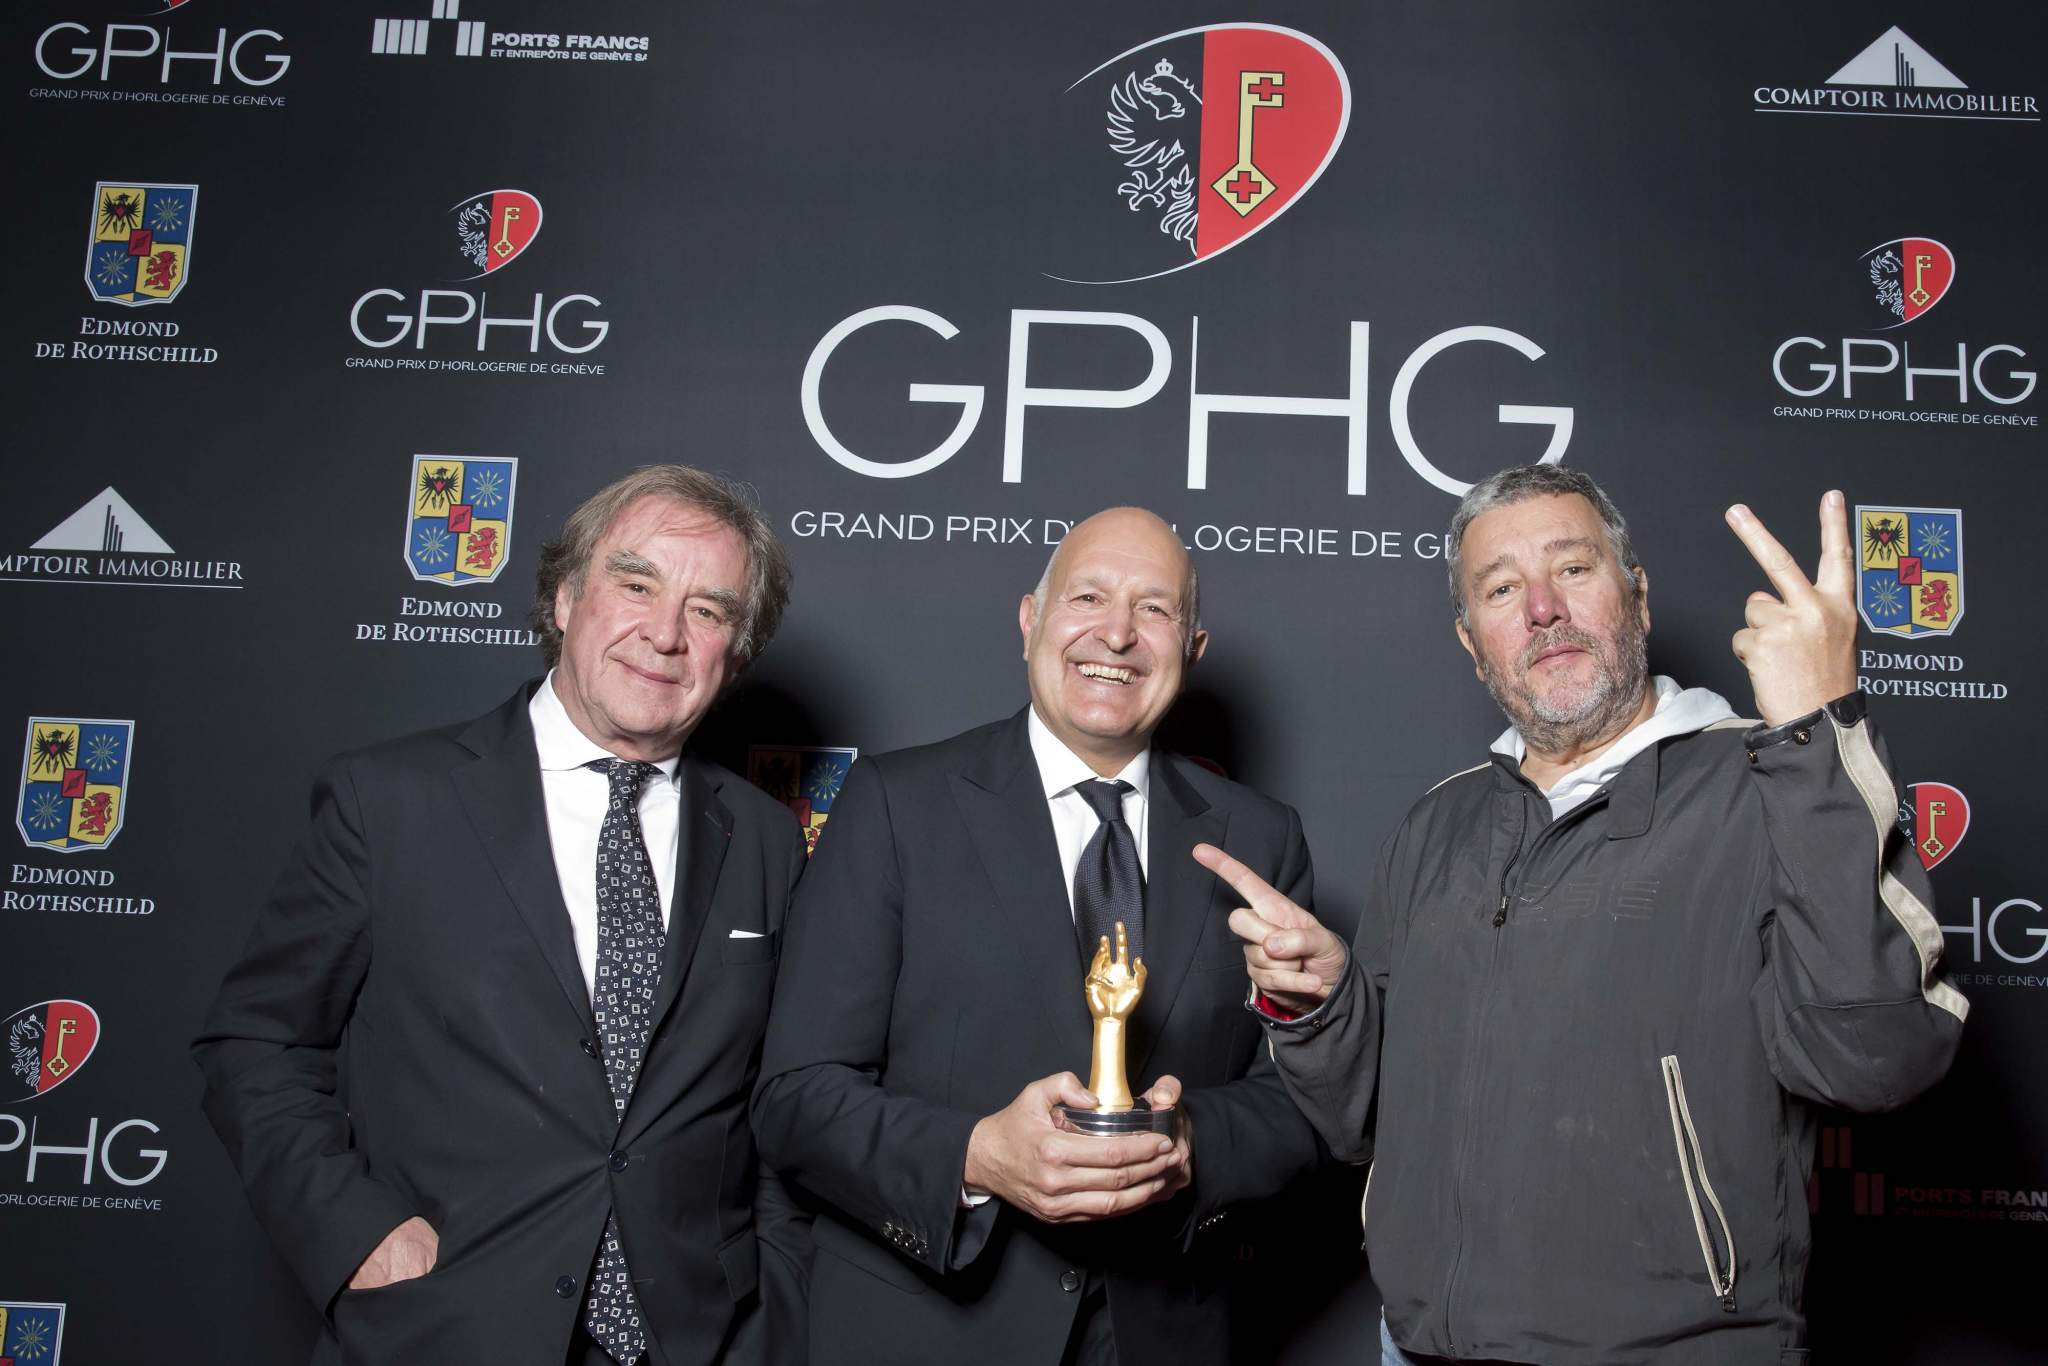 Michele Sofisti, CEO of Girard-Perregaux,winner of the « Aiguille d'Or » 2013, with Philippe Starck and Jean-Michel Wilmotte (jury members 2013)